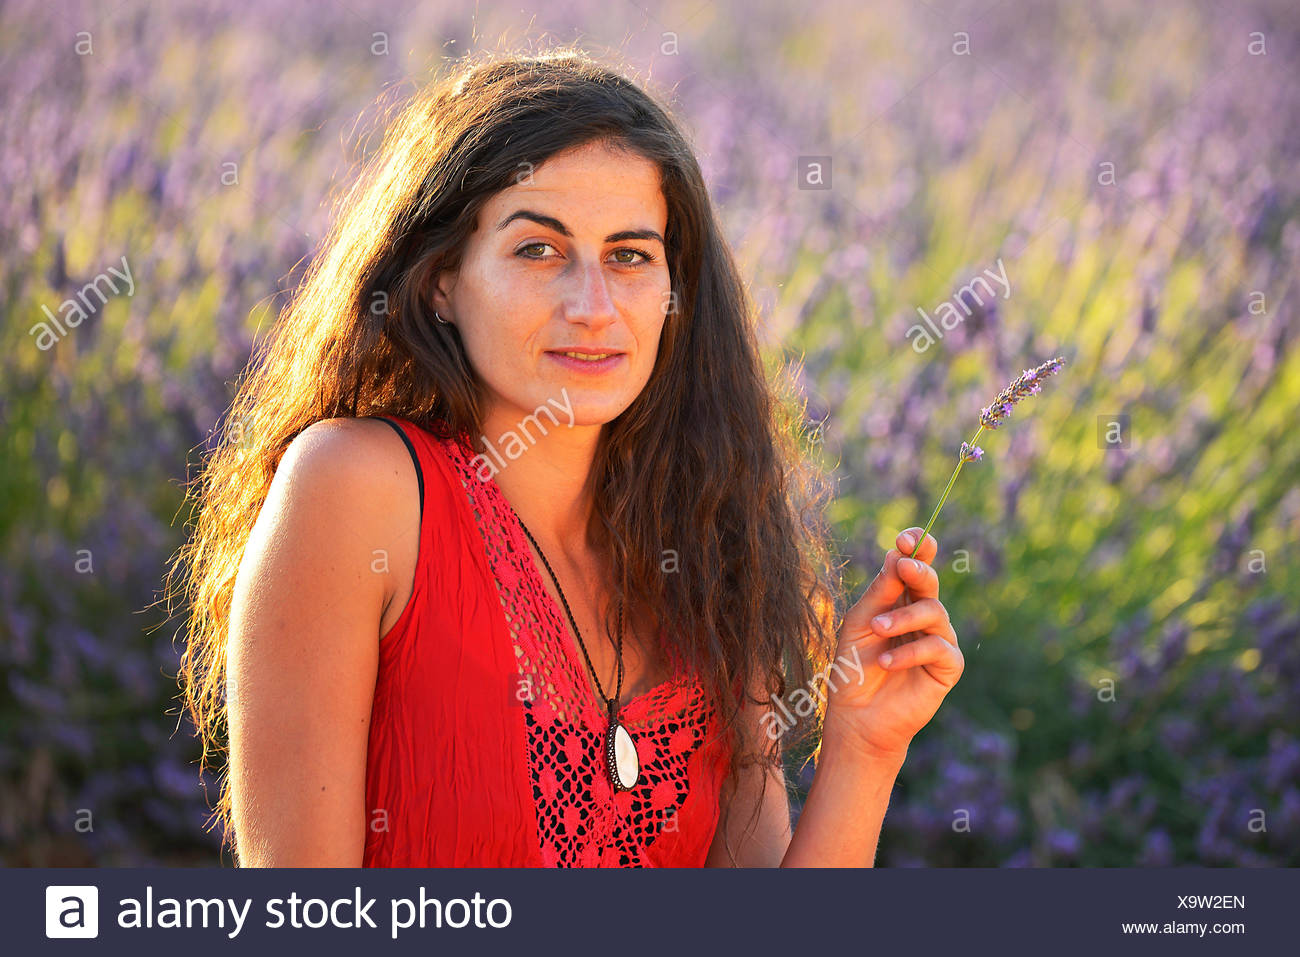 Europe France Provence Vaucluse Lavender Field Woman Walk Red Dress Bloom Blooming Nature Girl Walking French Brunette Hat